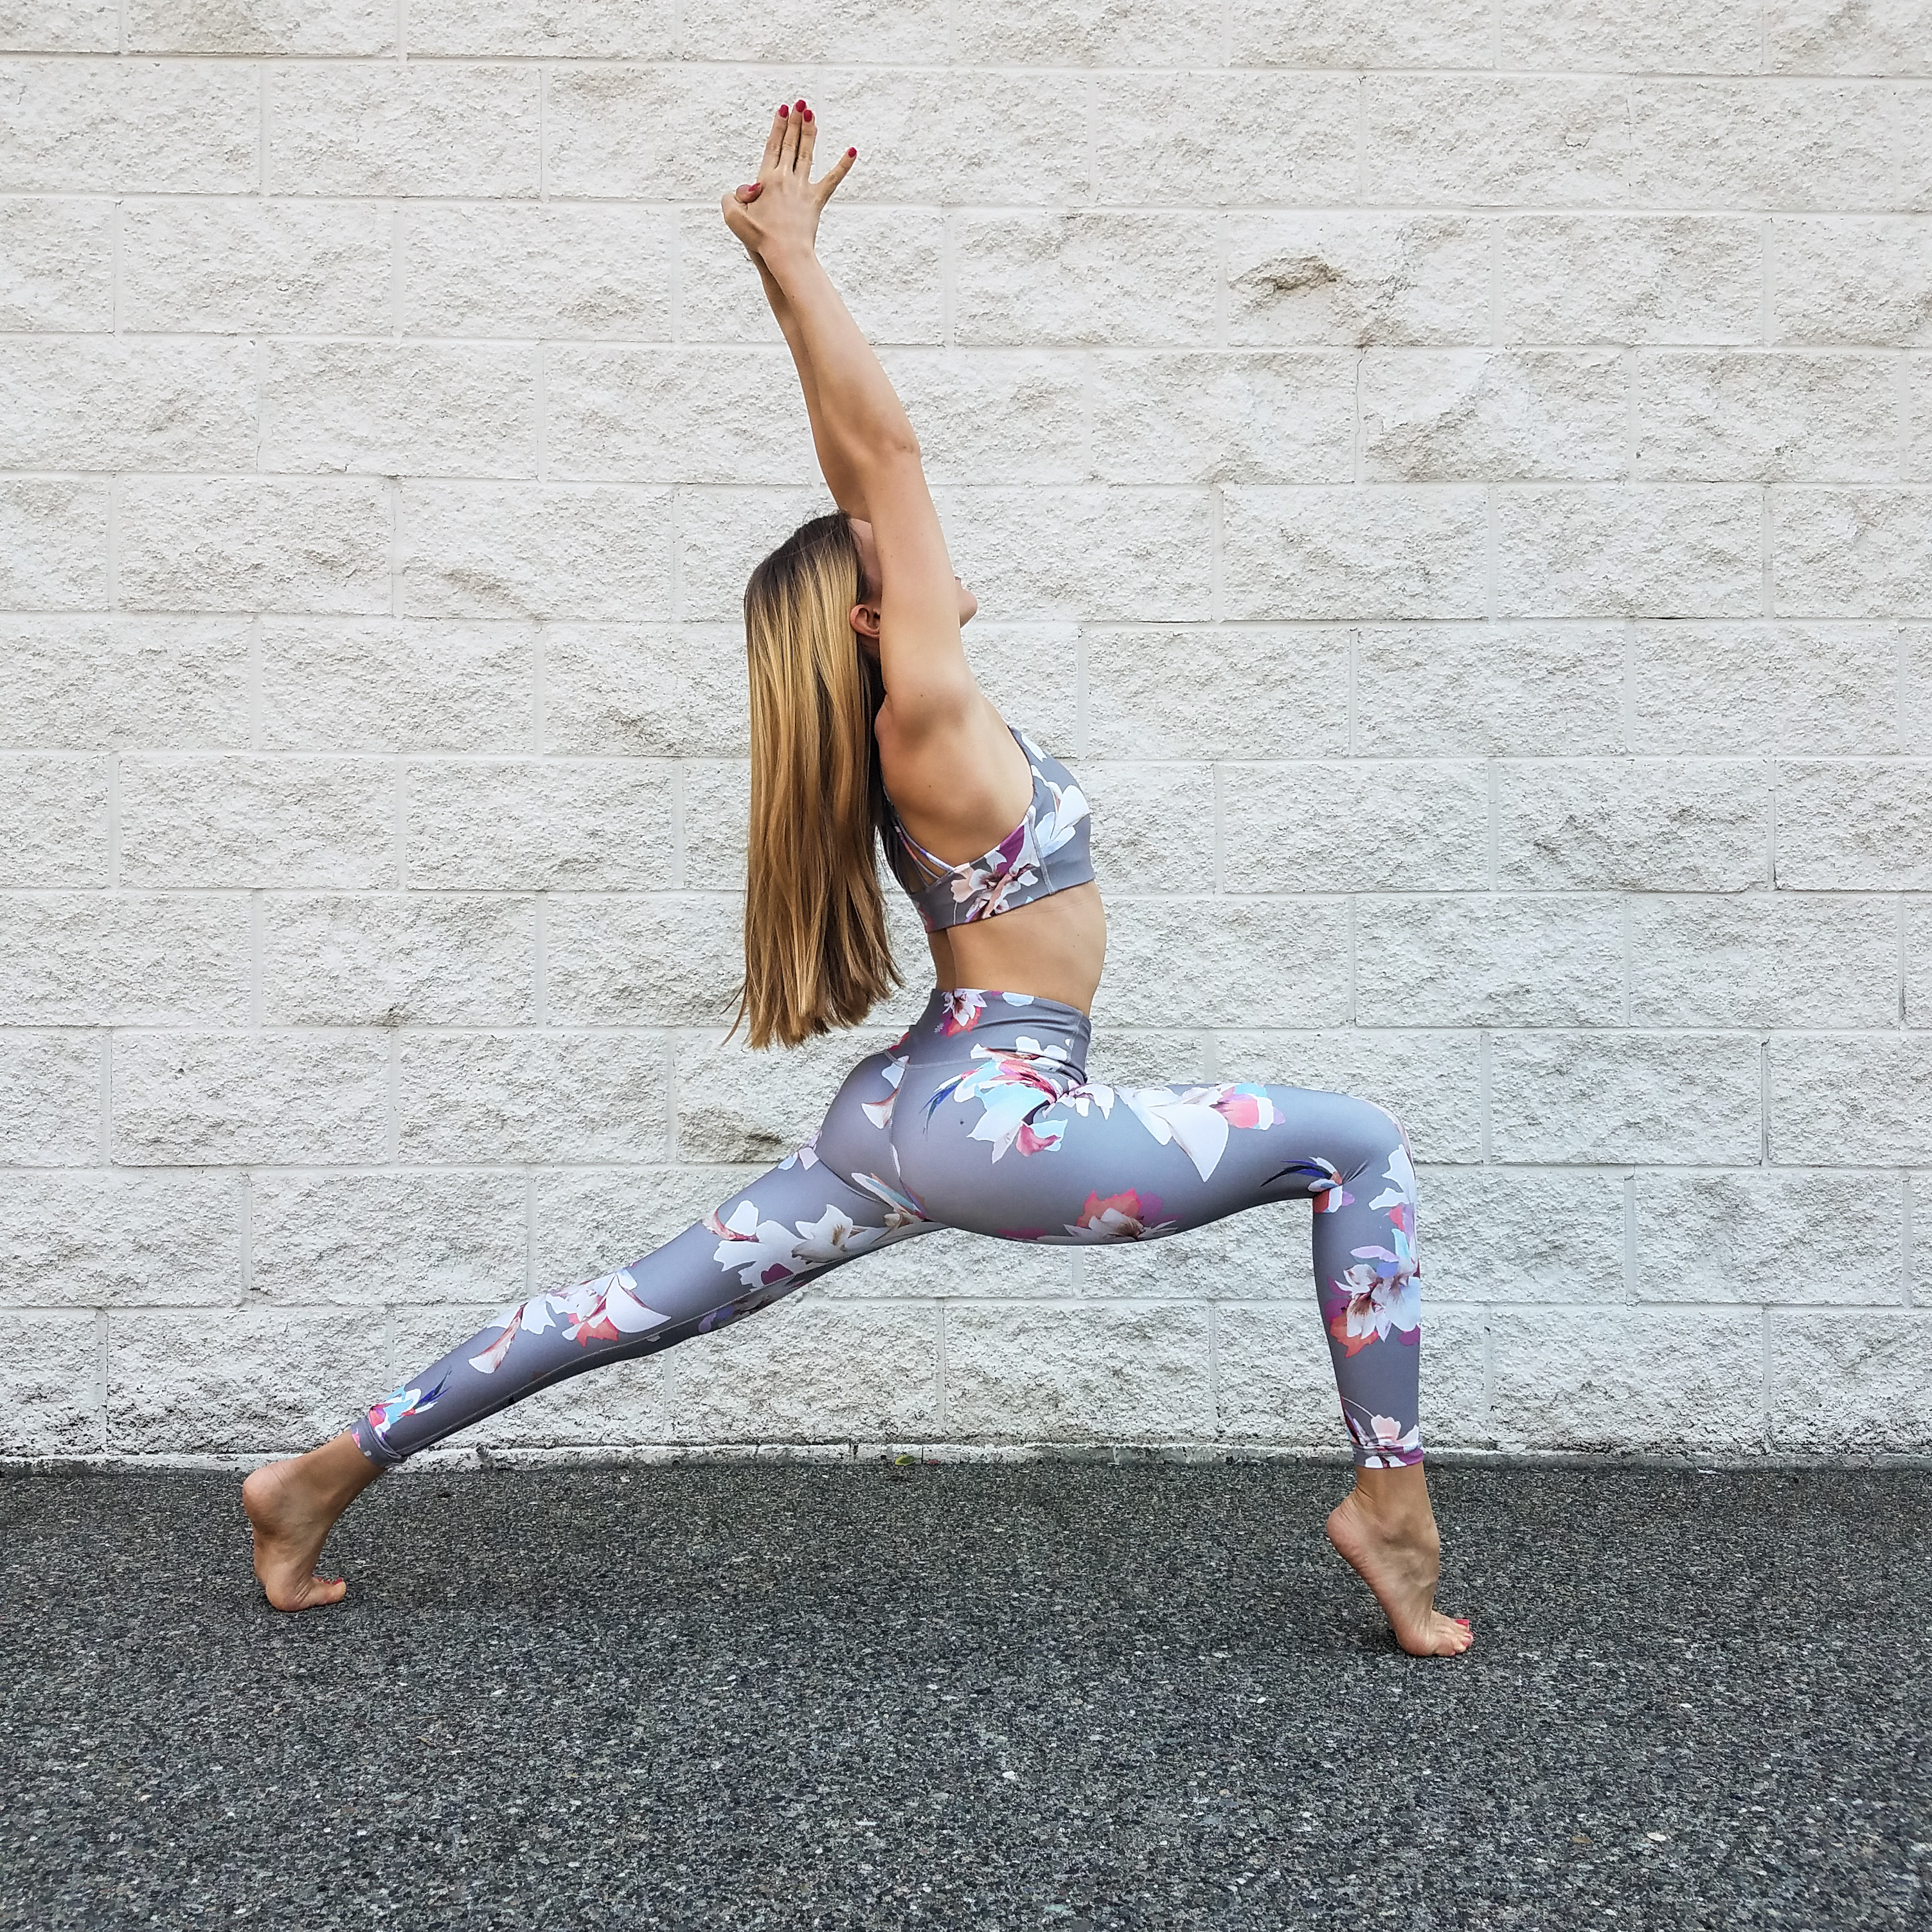 f274ca36ca11a2 I Tested the New Athleta Collection and Here's What Happened... | Seattle  Yoga | Wellness | Nutrition Coach | Karla Tafra